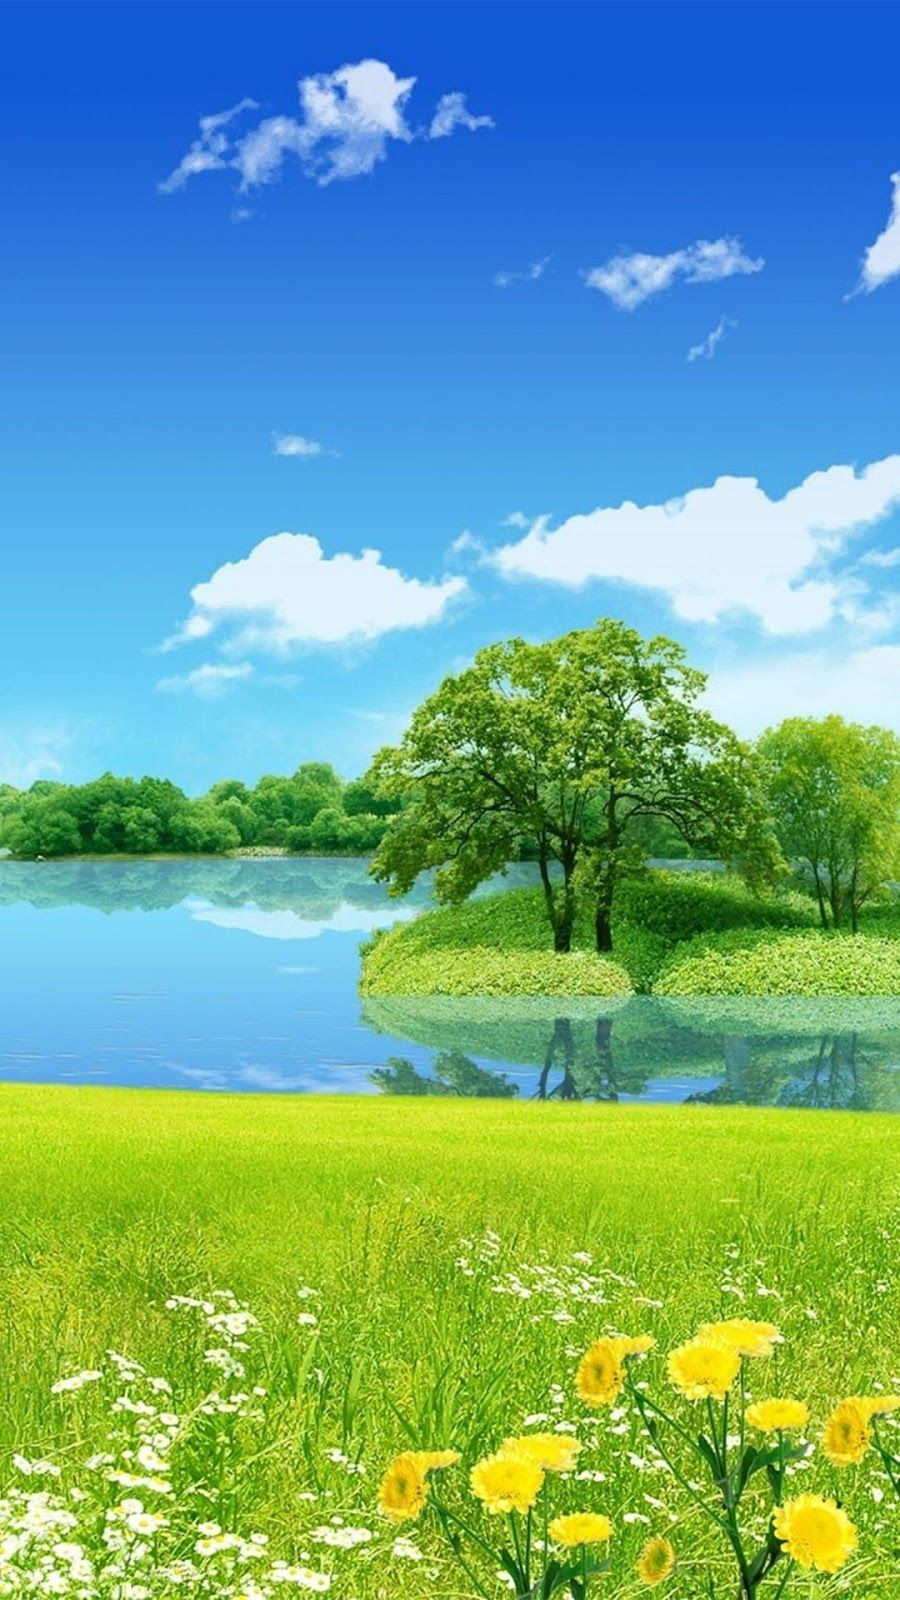 Nature Wallpaper In Hd For Mobile Nature Wallpaper Natural Scenery Scenery Landscape nature wallpaper hd for mobile